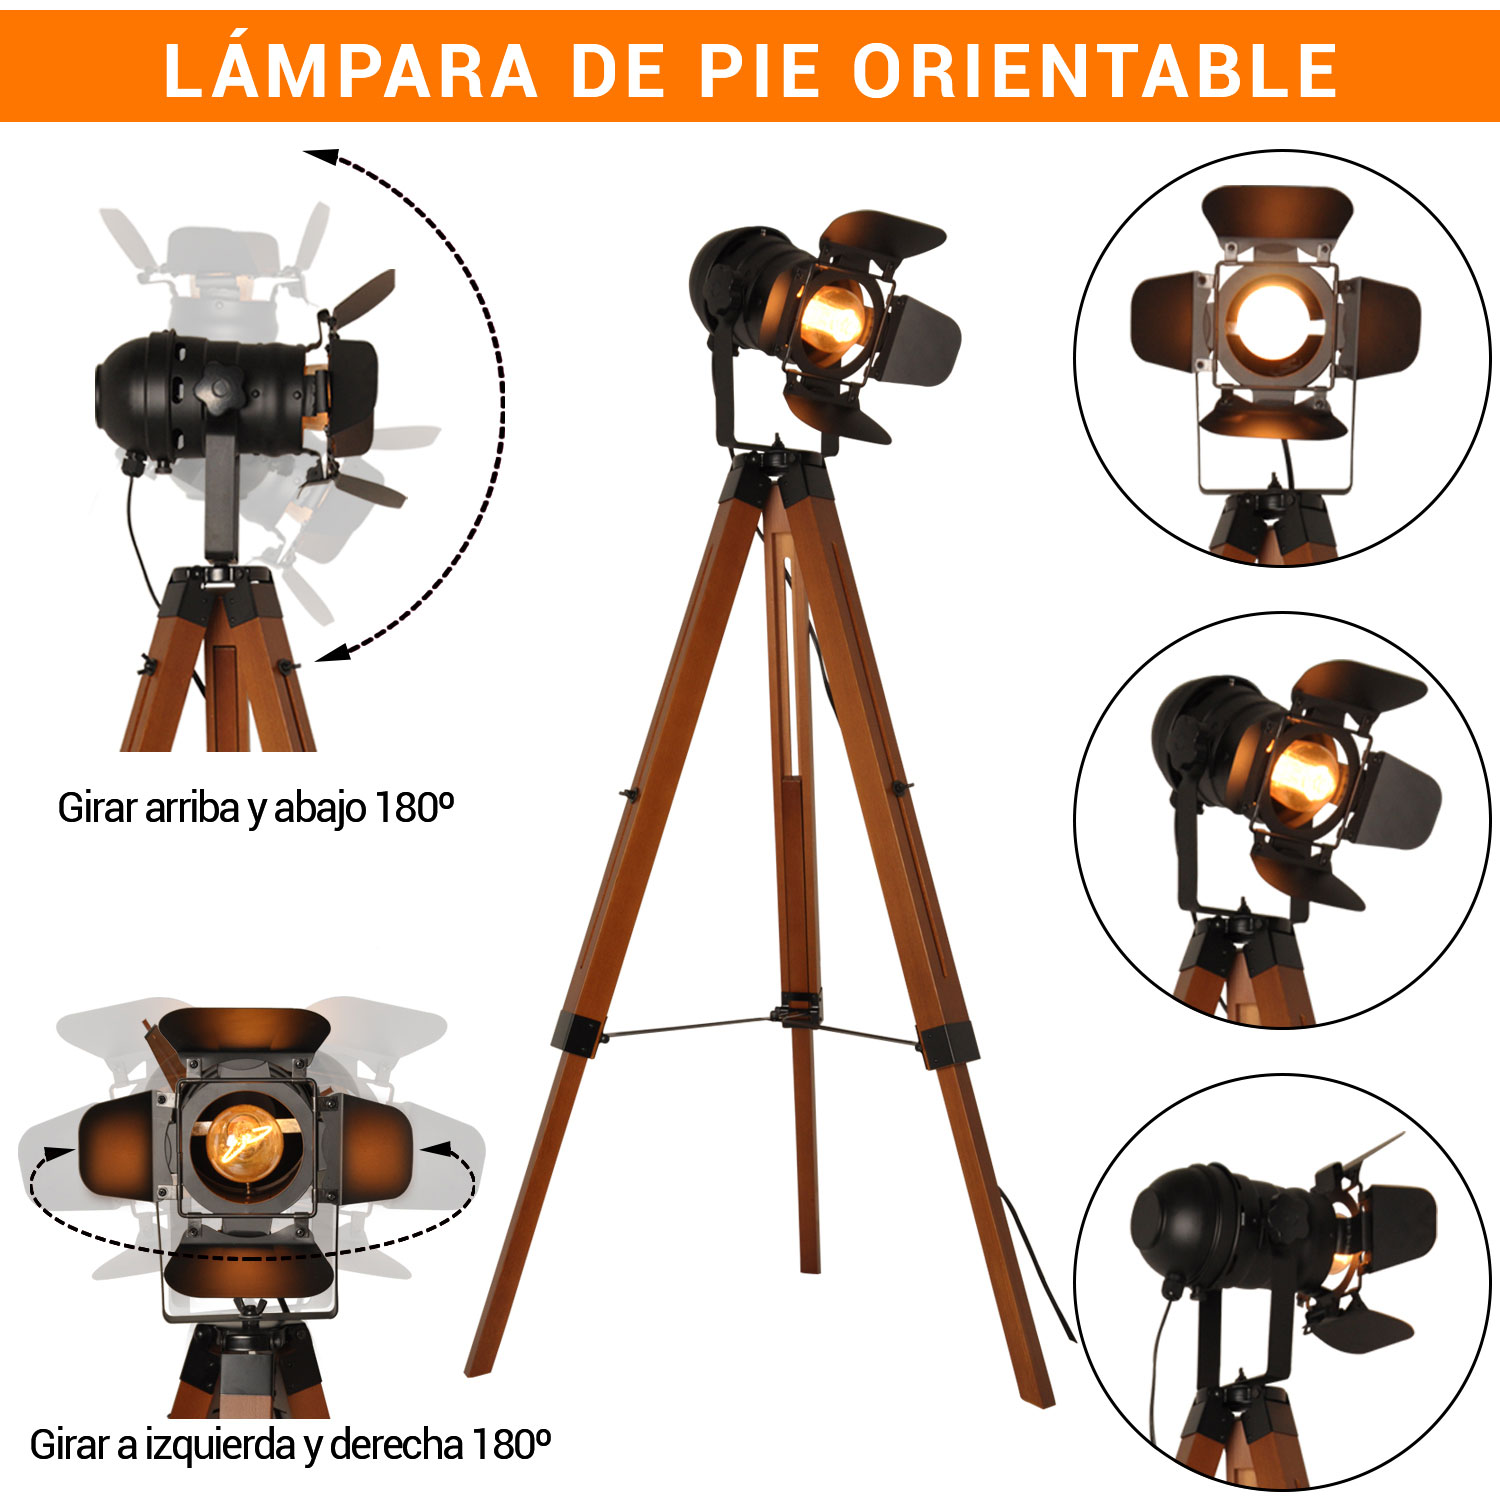 lámparas de pie orientables